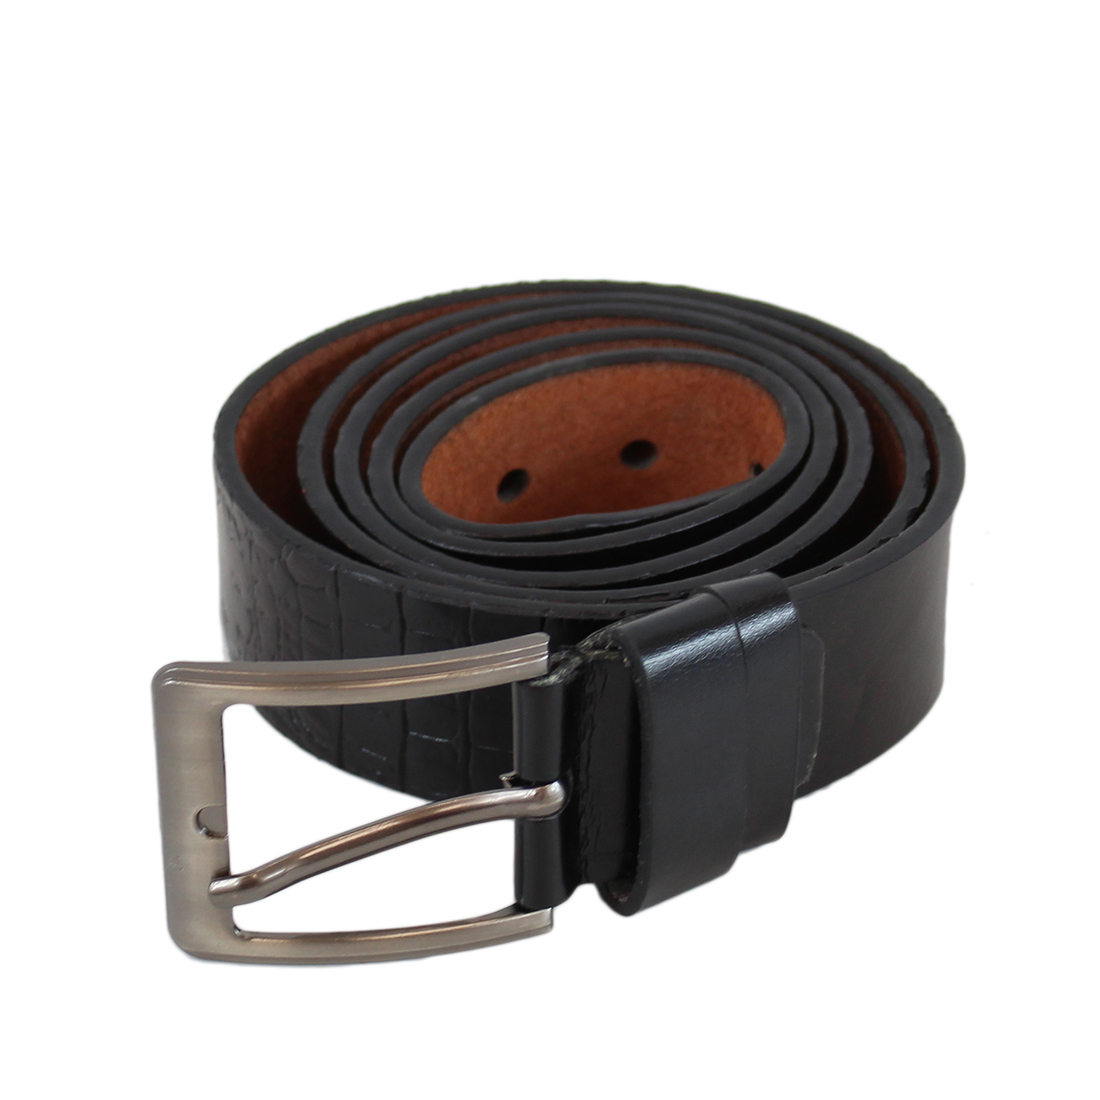 Plain shiny wide leather belt with silver buckle